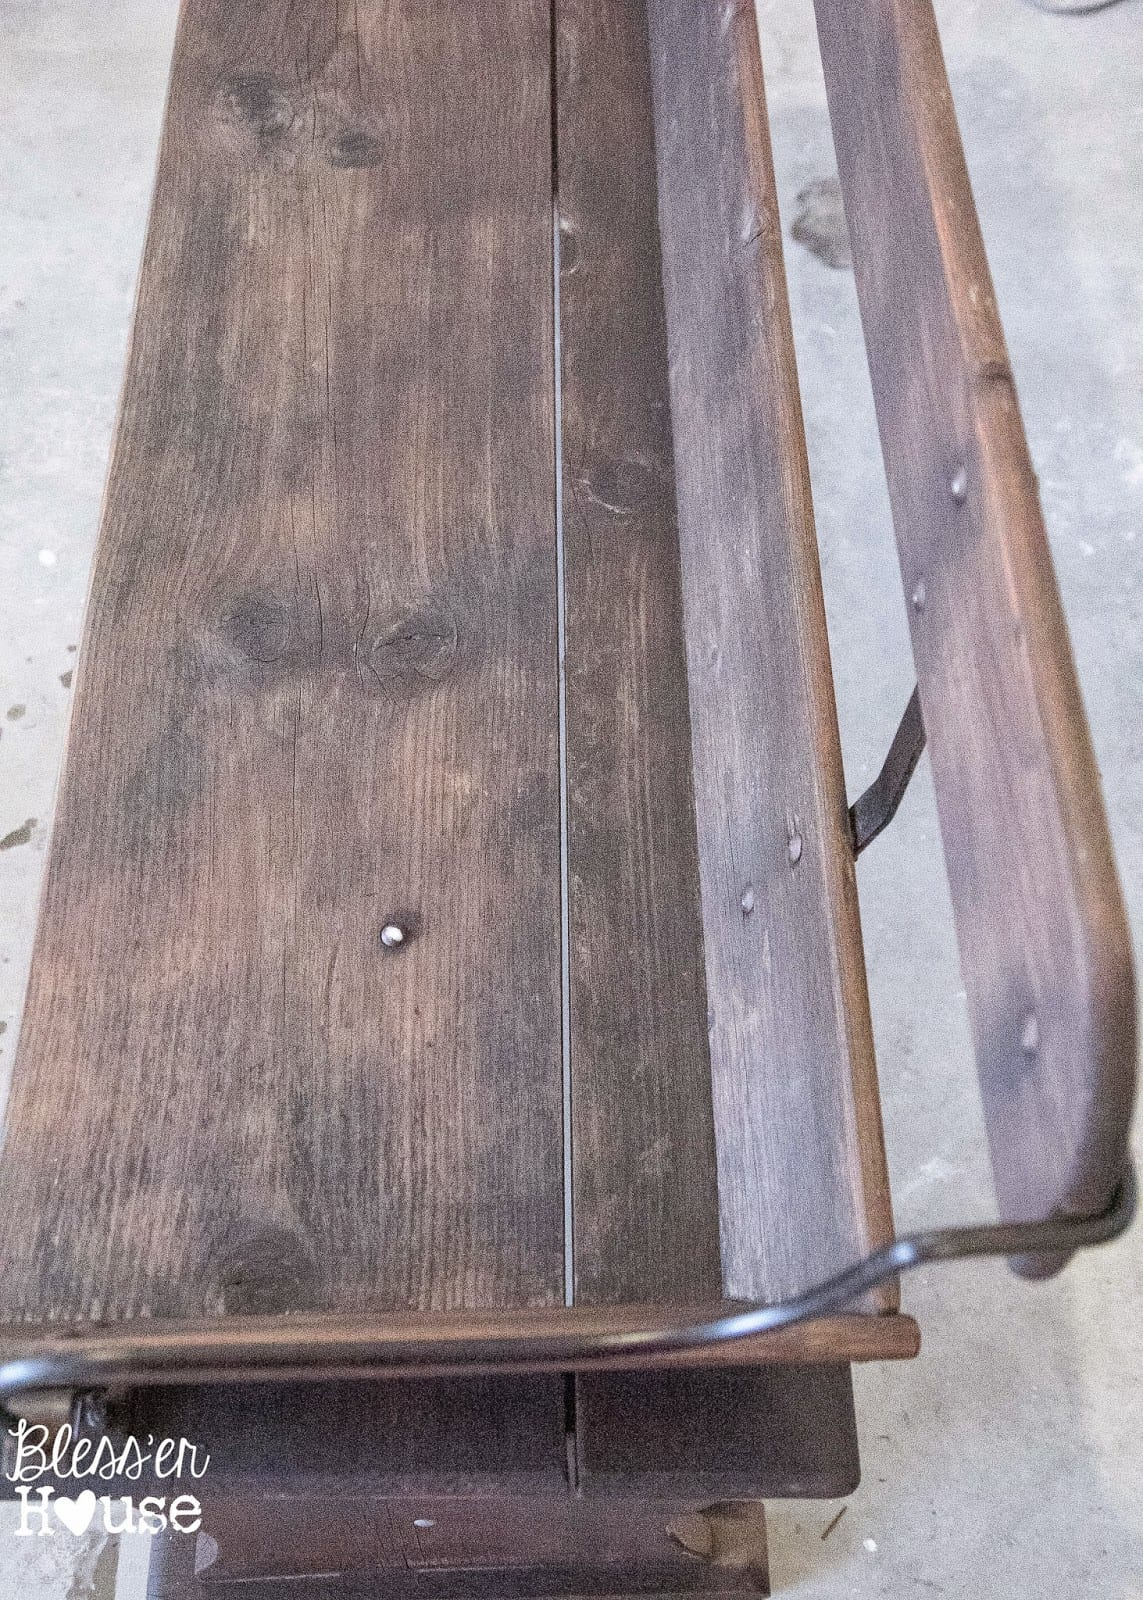 Bless'er House   Beginnings of an Entryway: How to Restore Reclaimed Wood